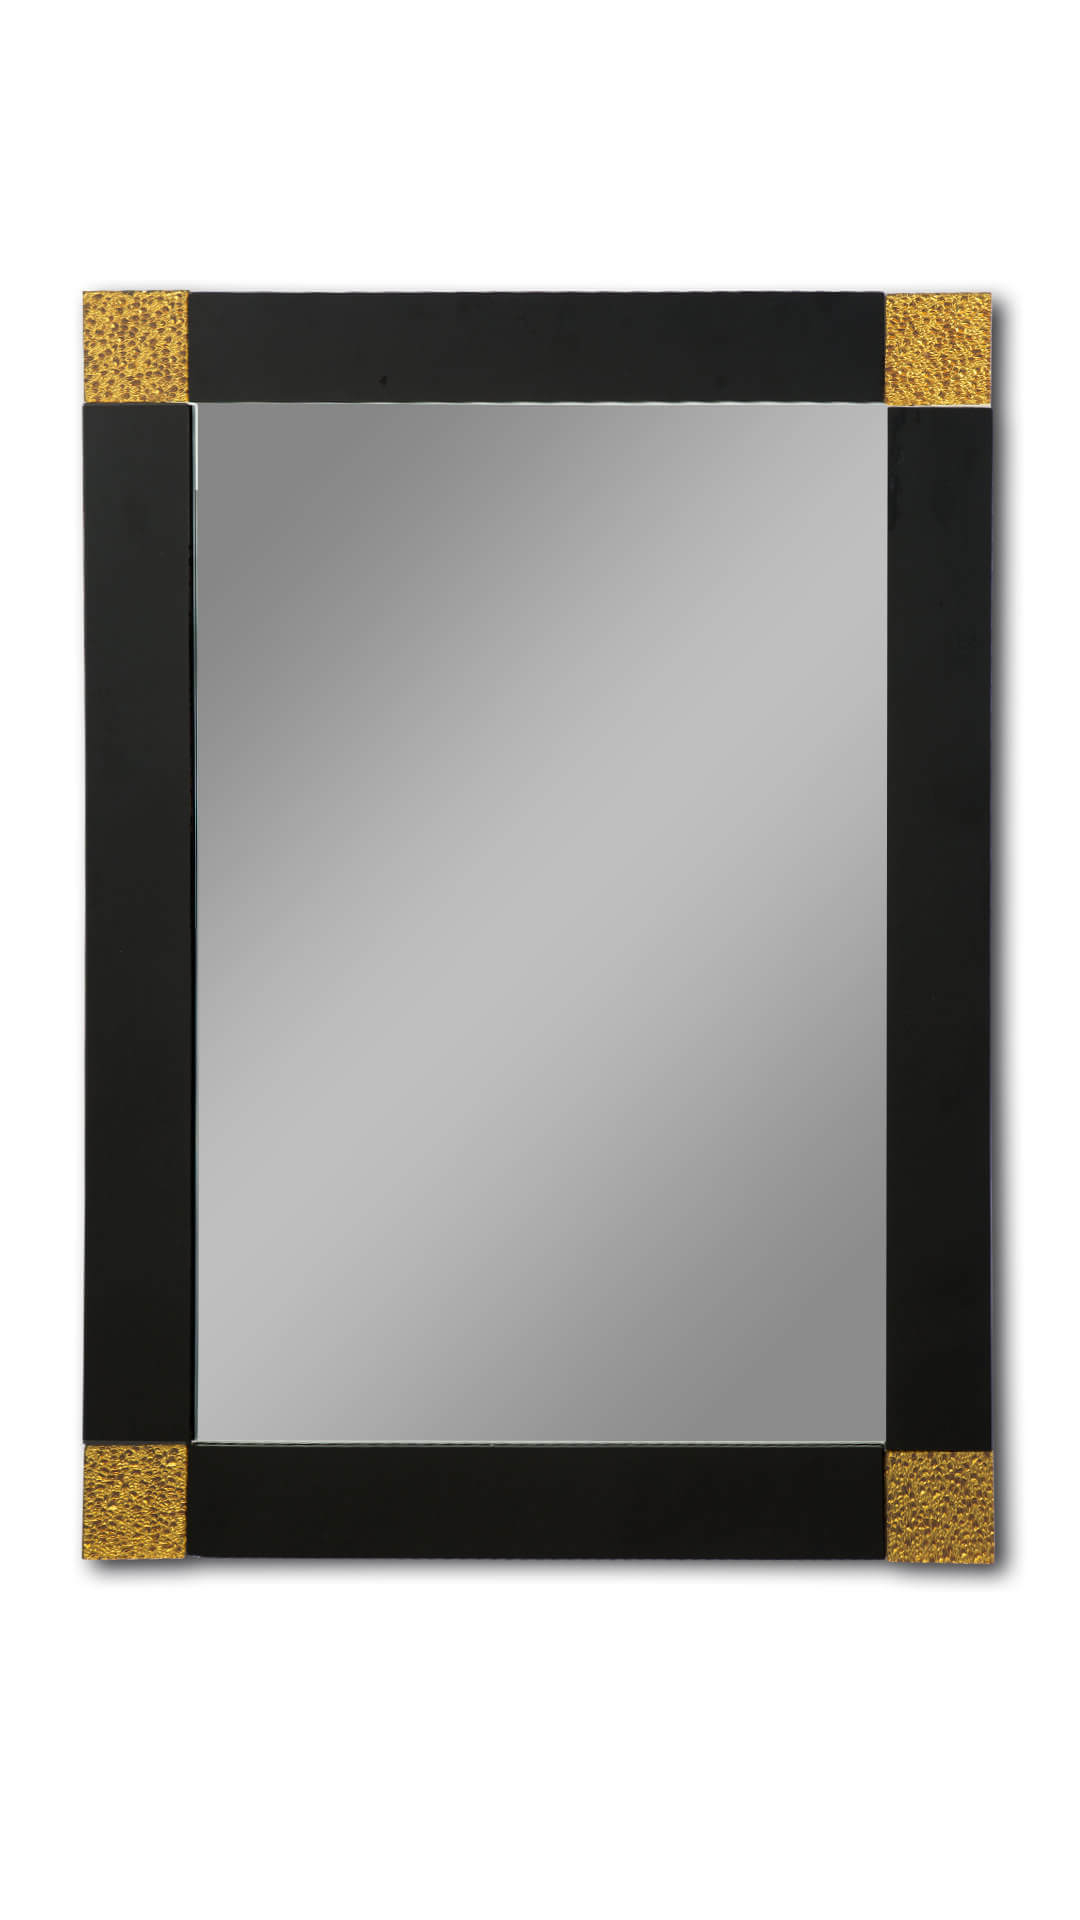 Most Popular Black And Gold Rectangle Wall Mirror With Regard To Black Wall Mirrors (View 20 of 20)